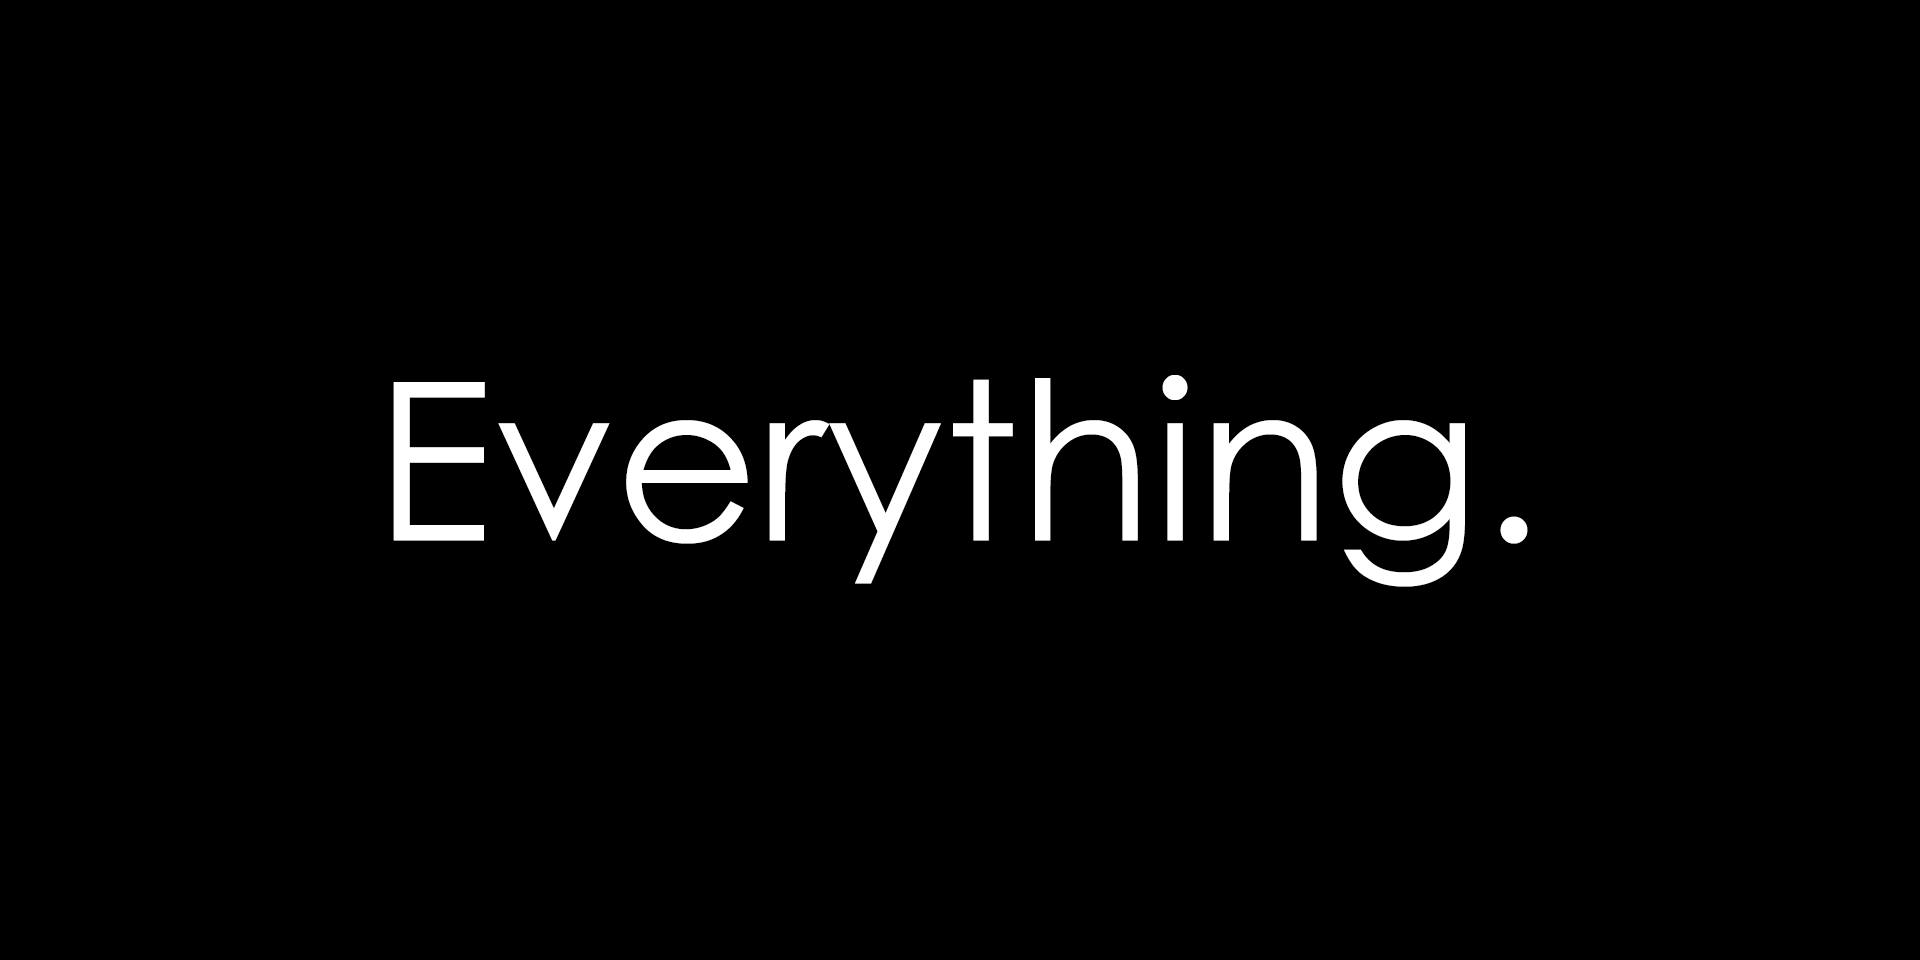 Everything banner